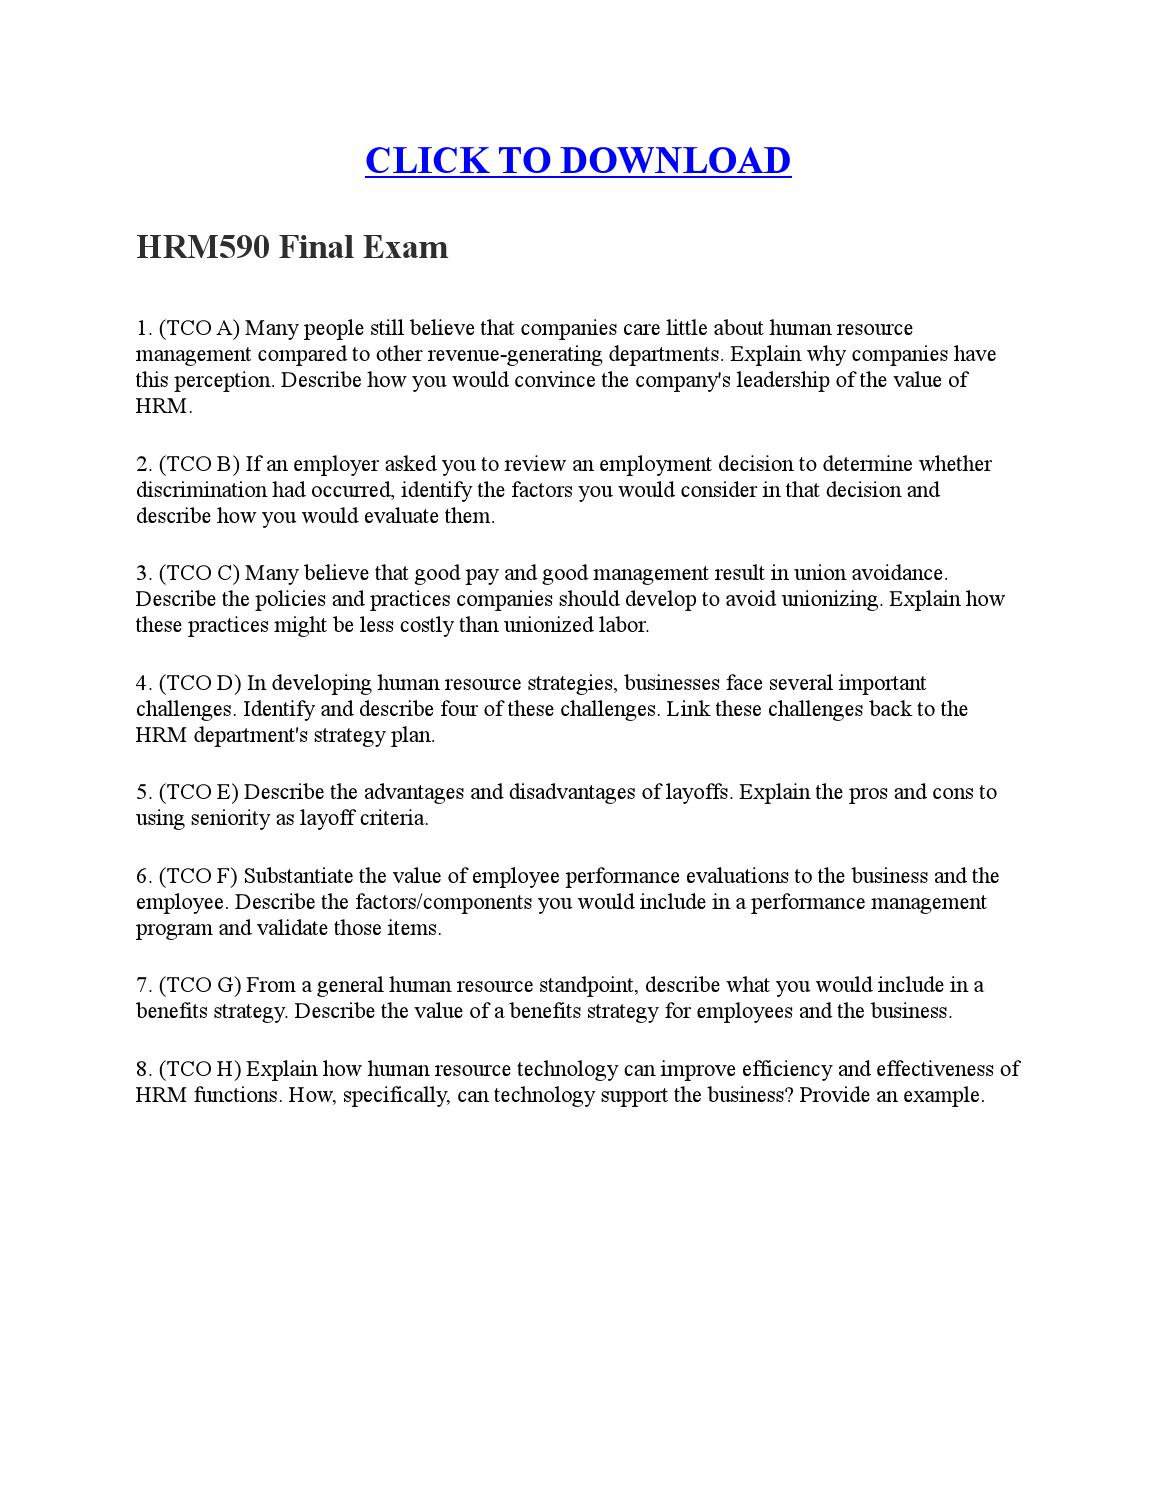 hrm590 final exam Hrm 590 final exam click the link to get answers: 1 (tco a) many people still believe that companies care little about human.